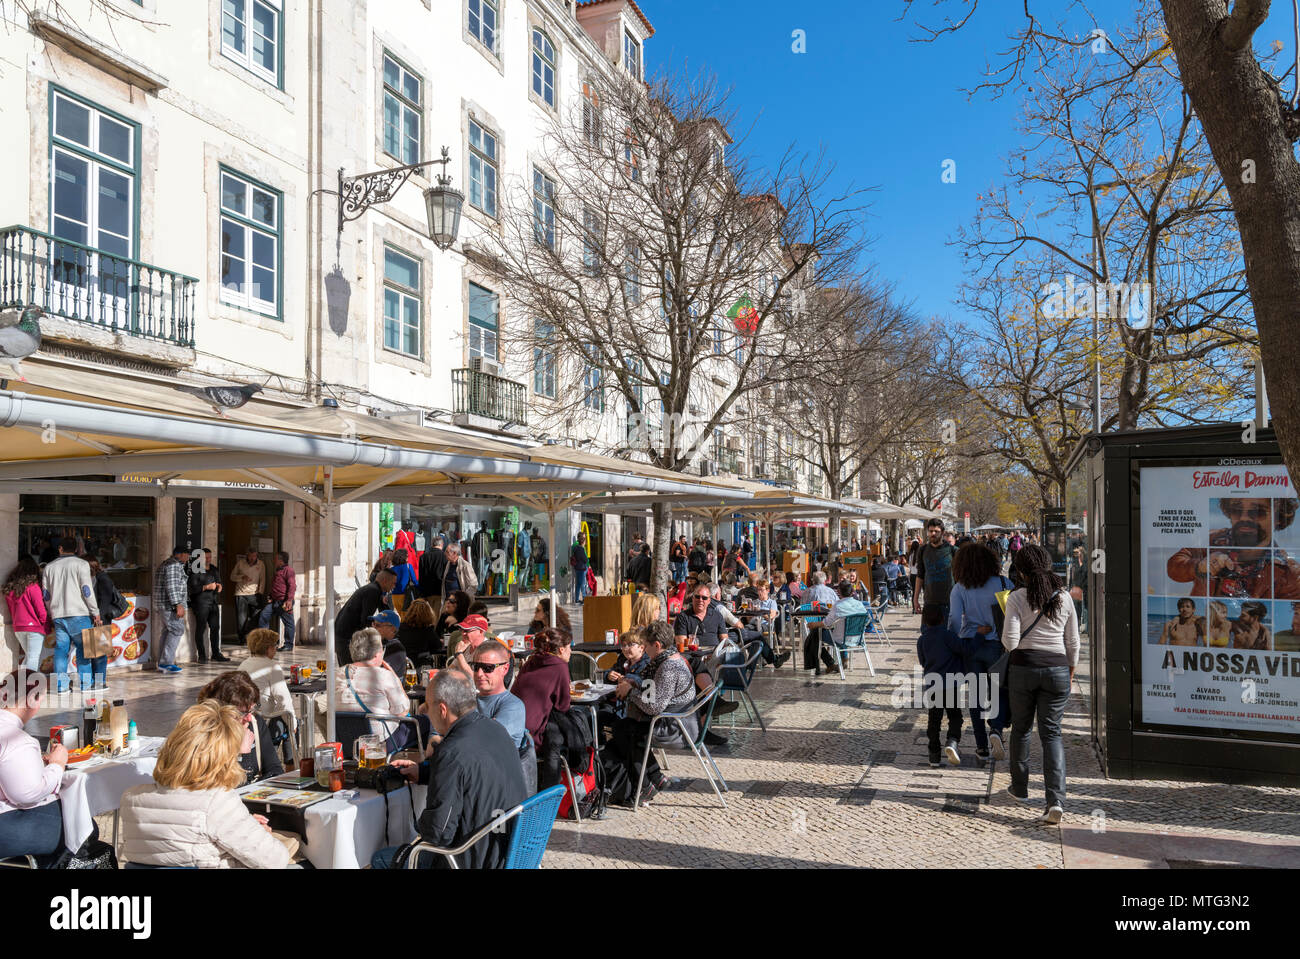 Cafes and shops on Praca Dom Pedro IV ( Rossio ), Baixa district, Lisbon, Portugal - Stock Image